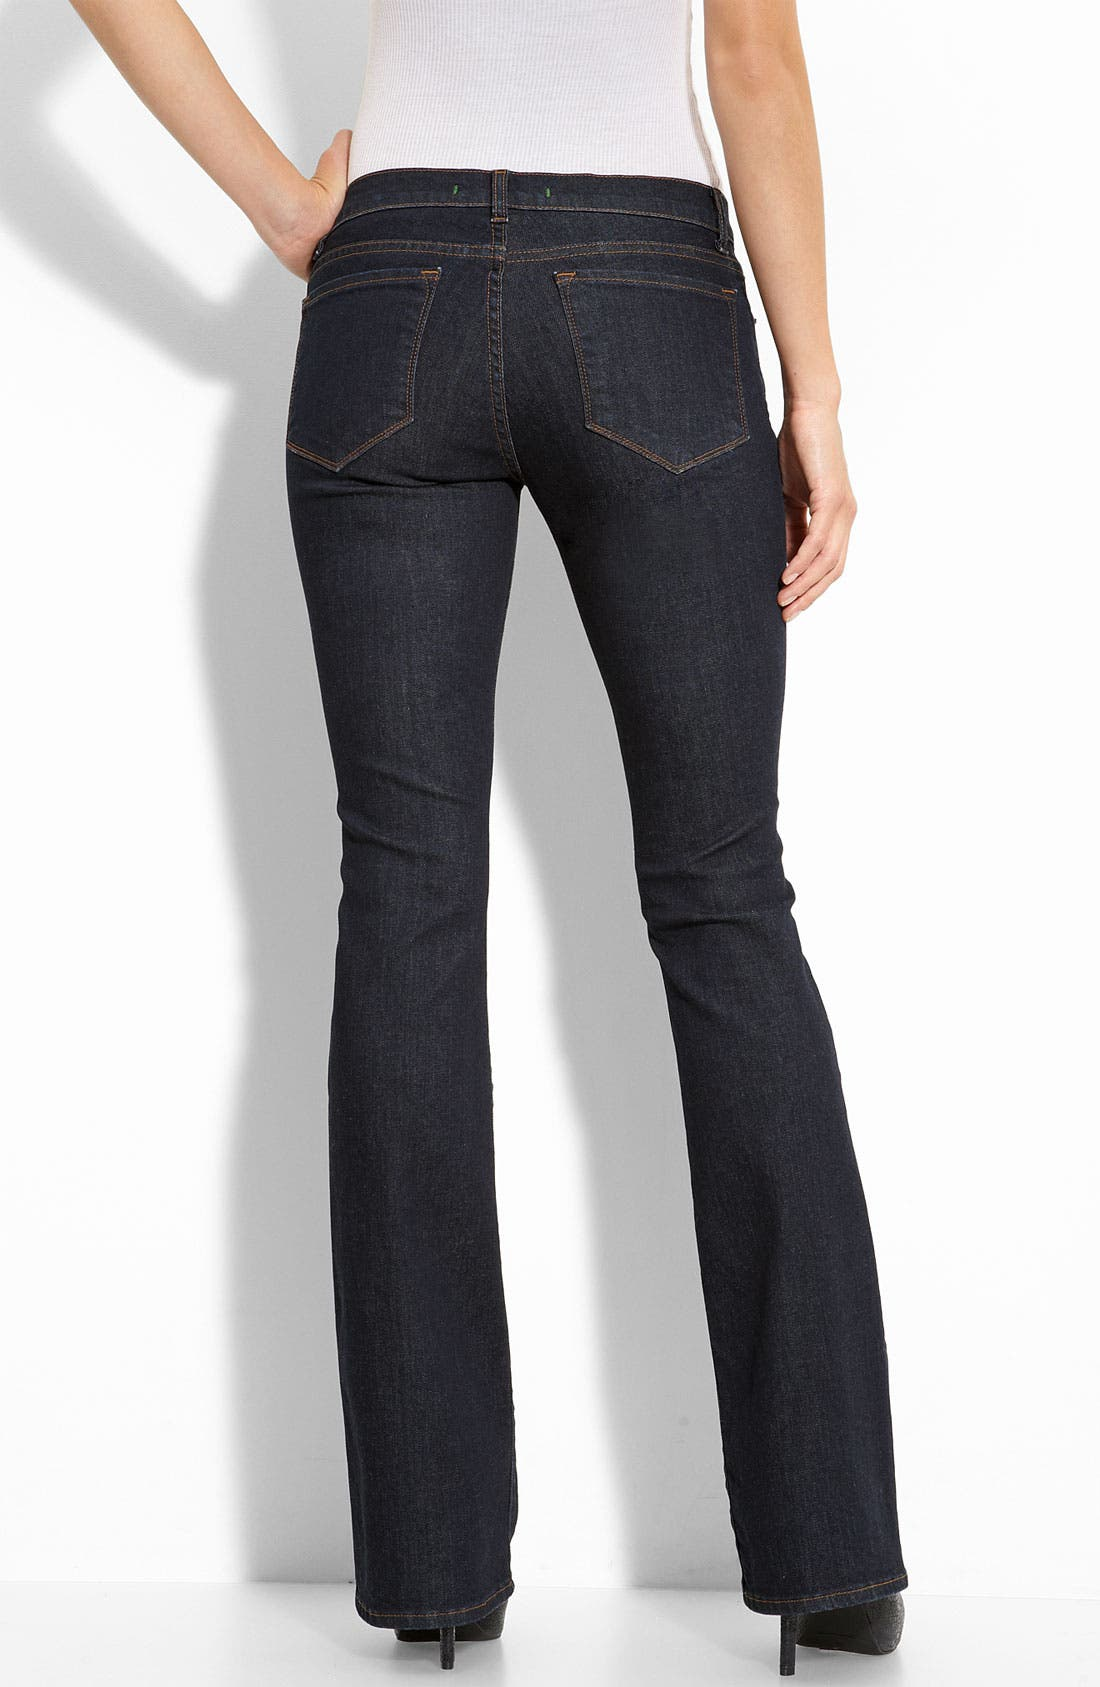 J BRAND,                             'Bailey' Bootcut Stretch Jeans,                             Main thumbnail 1, color,                             401